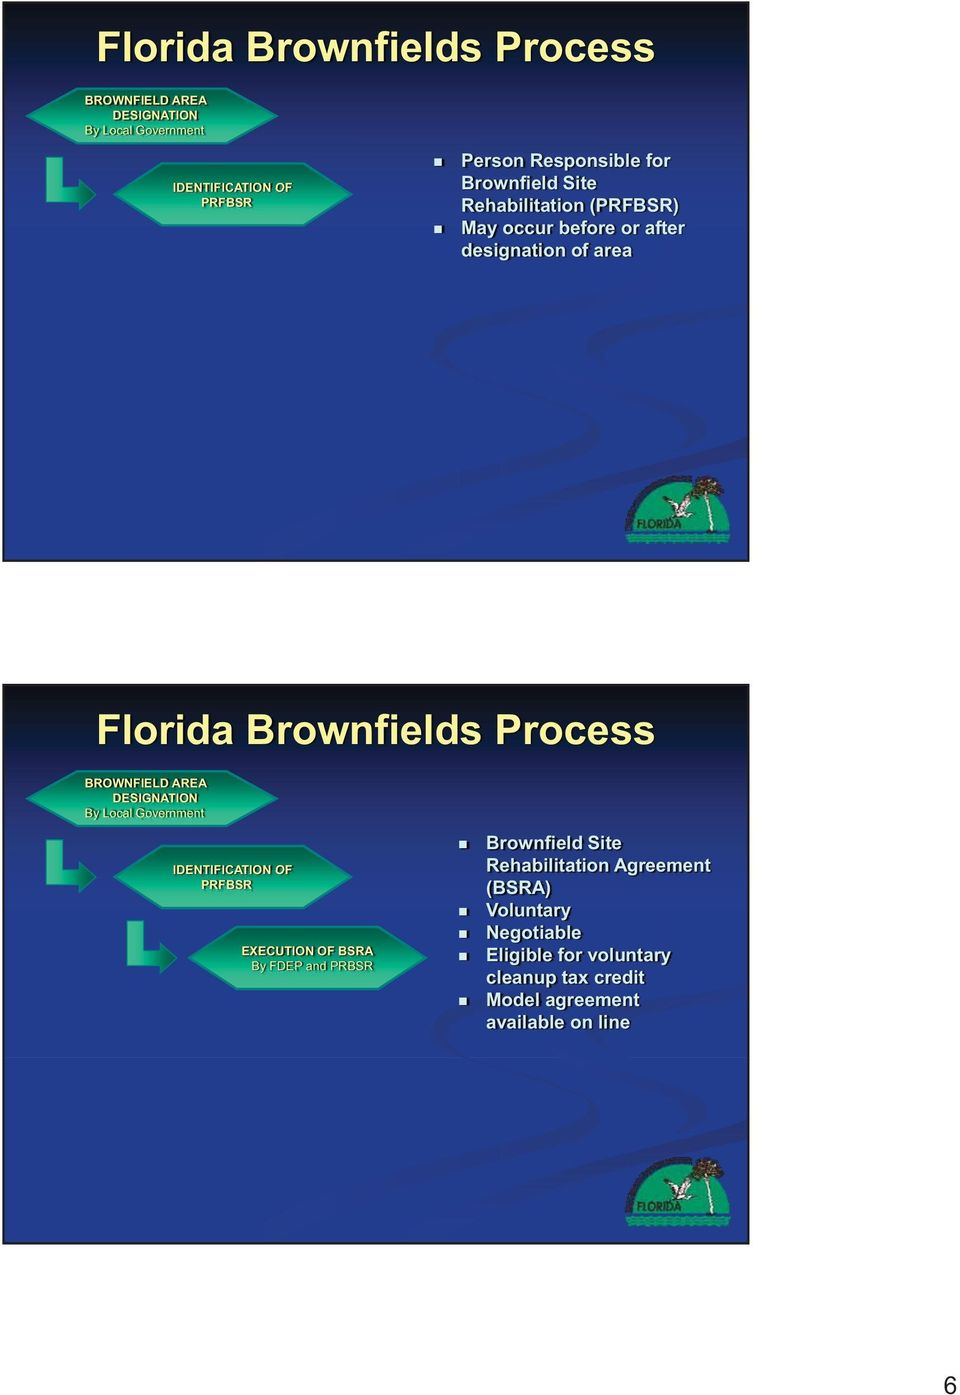 BROWNFIELD AREA DESIGNATION By Local Government IDENTIFICATION OF PRFBSR EXECUTION OF BSRA By FDEP and PRBSR Brownfield